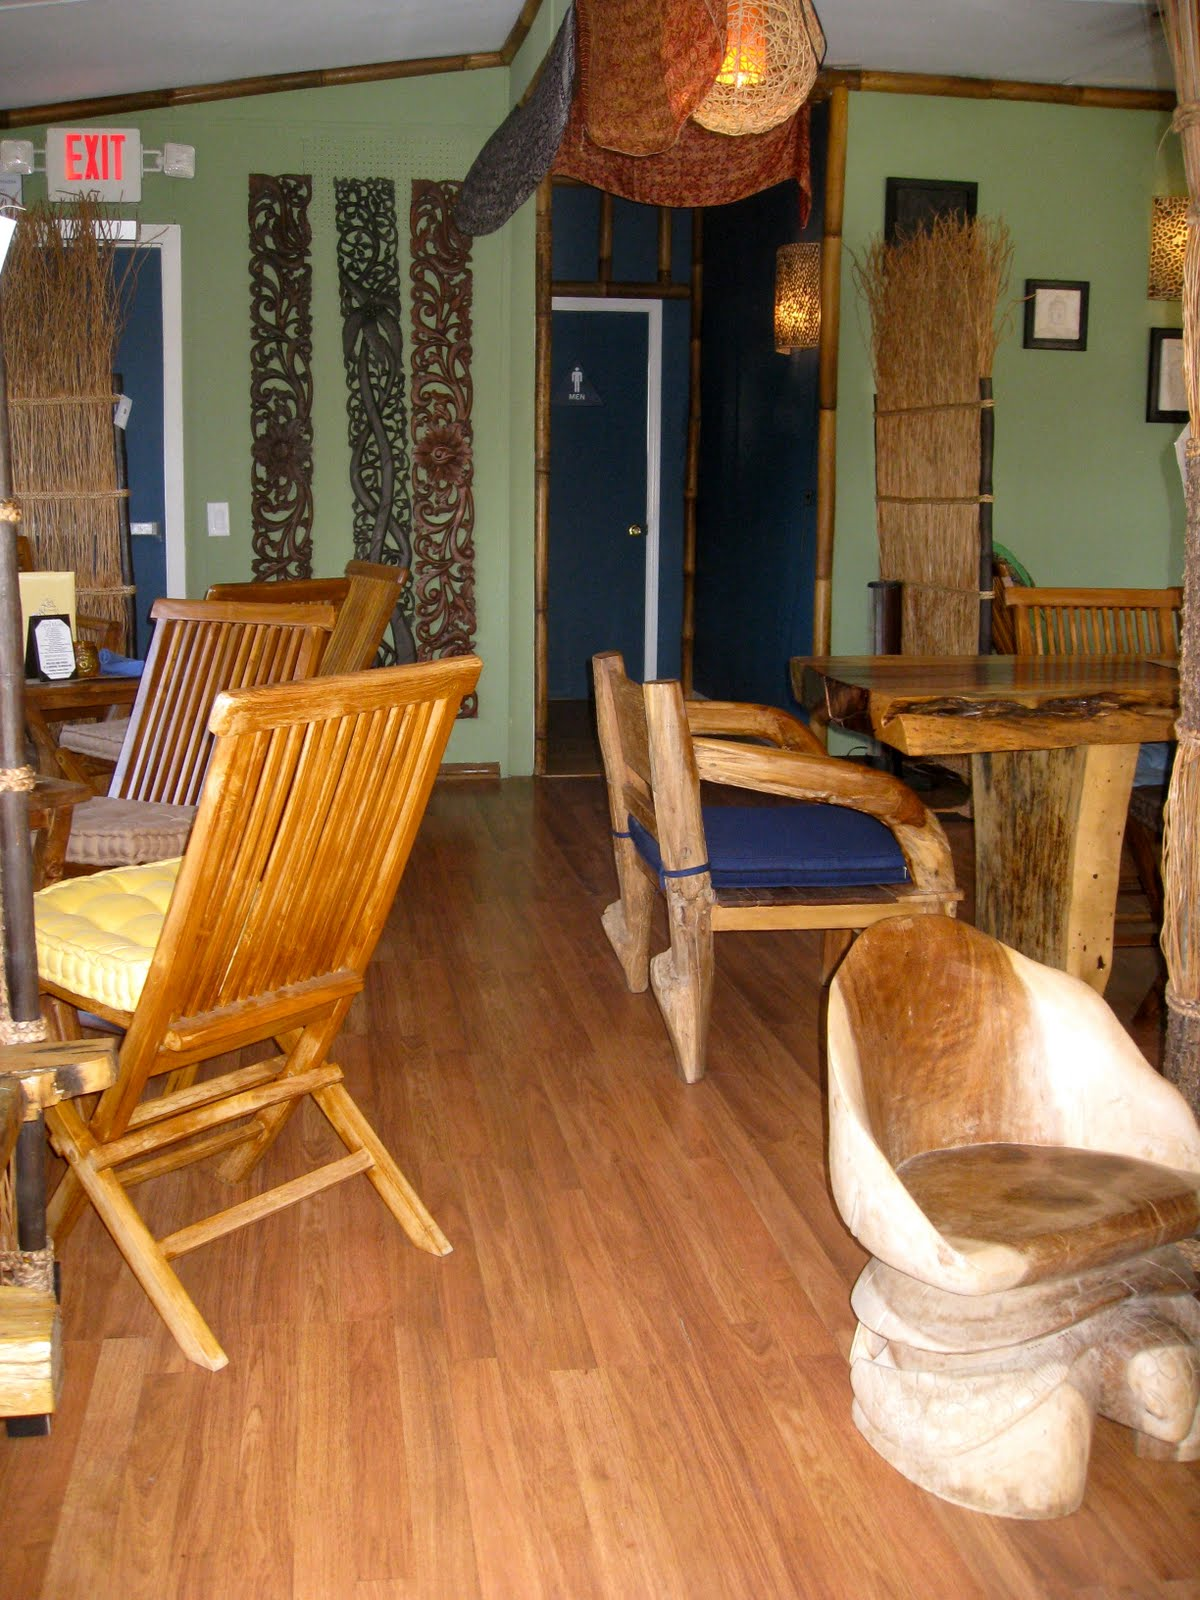 How About A Bar That Serves Drinks, Food And You Can Shop For Cool Wooden Furniture  Direct From Bali? Sounds Great!